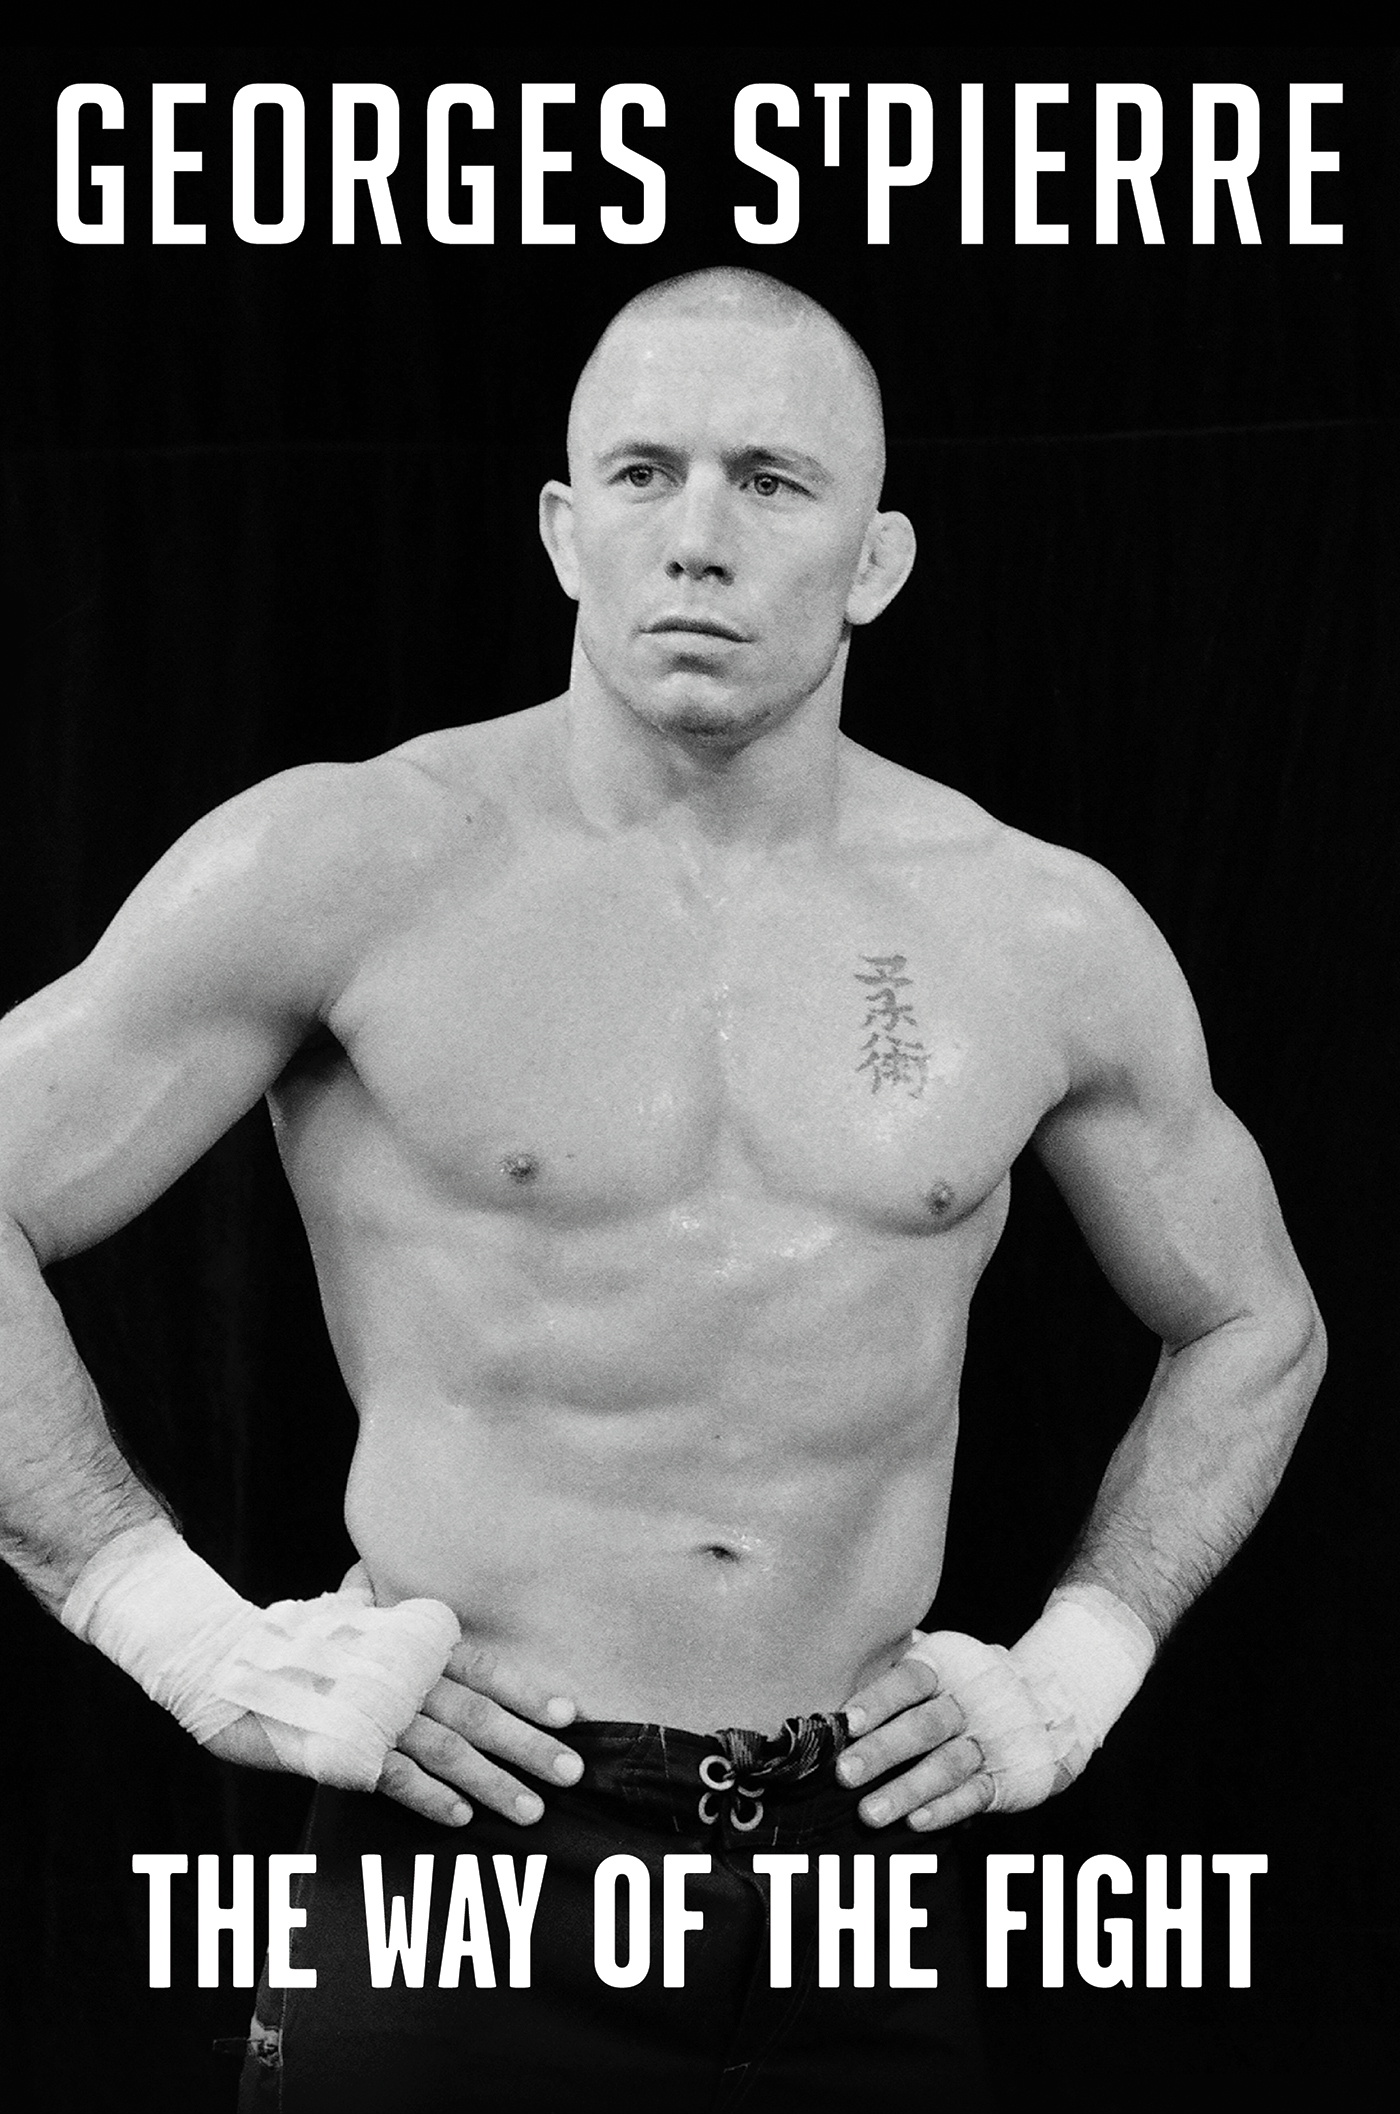 Download Ebook The Way of the Fight by Georges St-Pierre Pdf